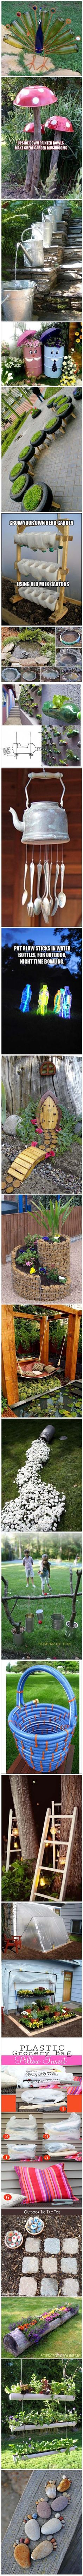 Simple outdoor ideas that are incredibly creative